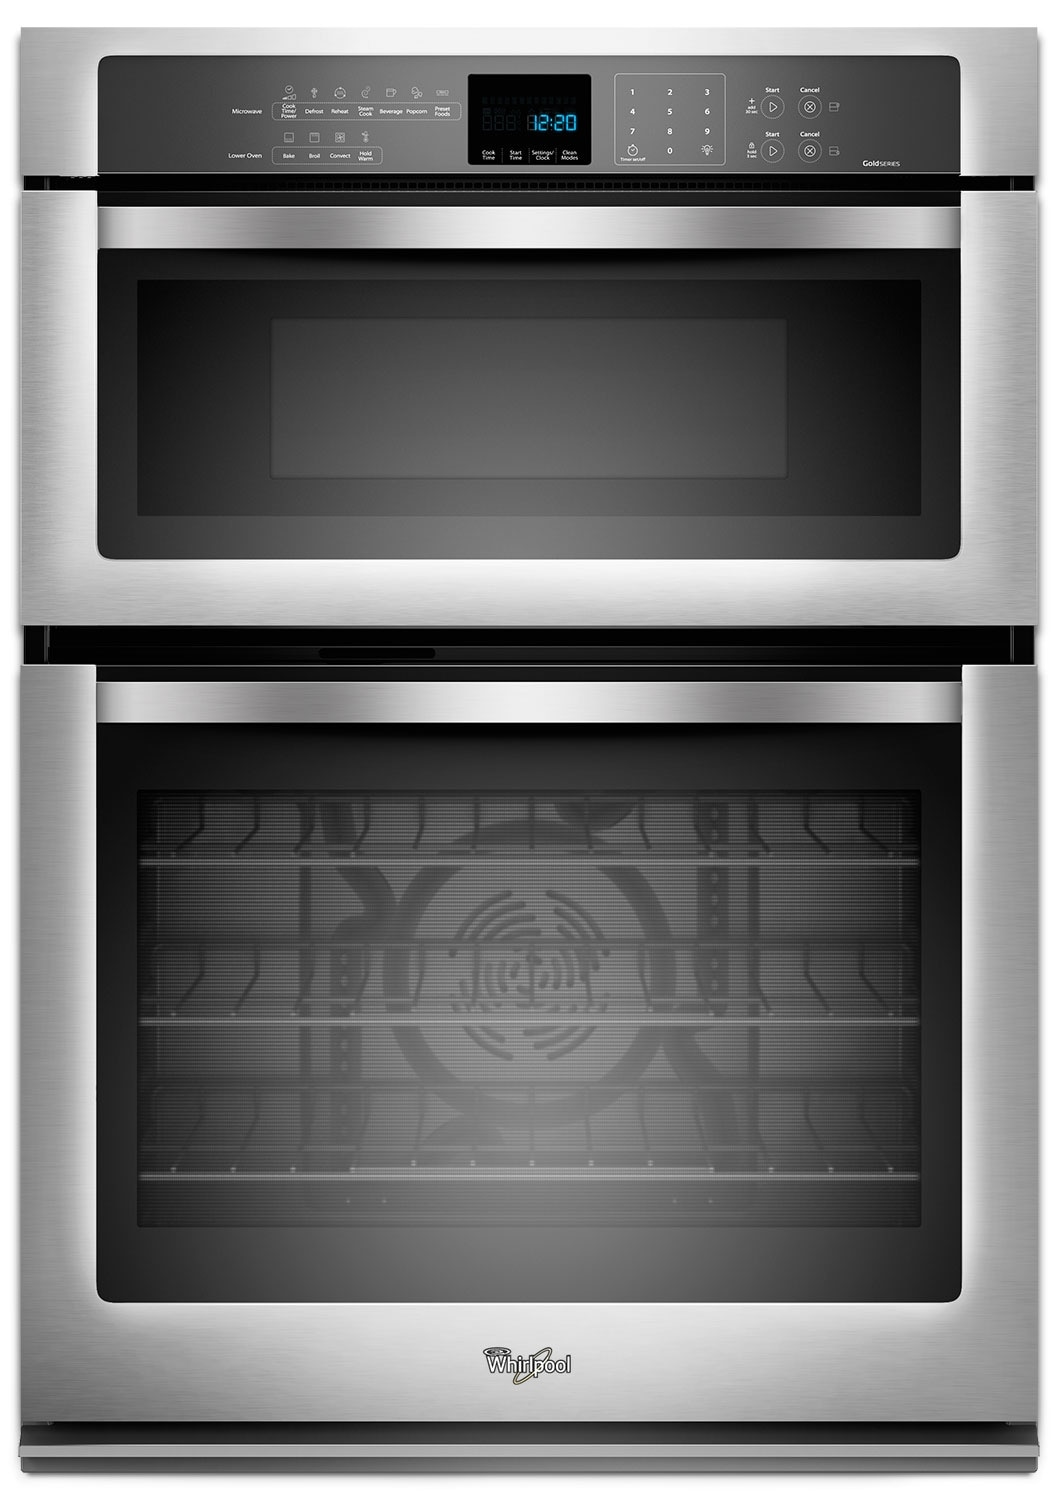 Cooking Products - Whirlpool Stainless Steel Wall Oven (5 Cu. Ft.) w/ Microwave (1.4 Cu. Ft.) - WOC95EC0AS